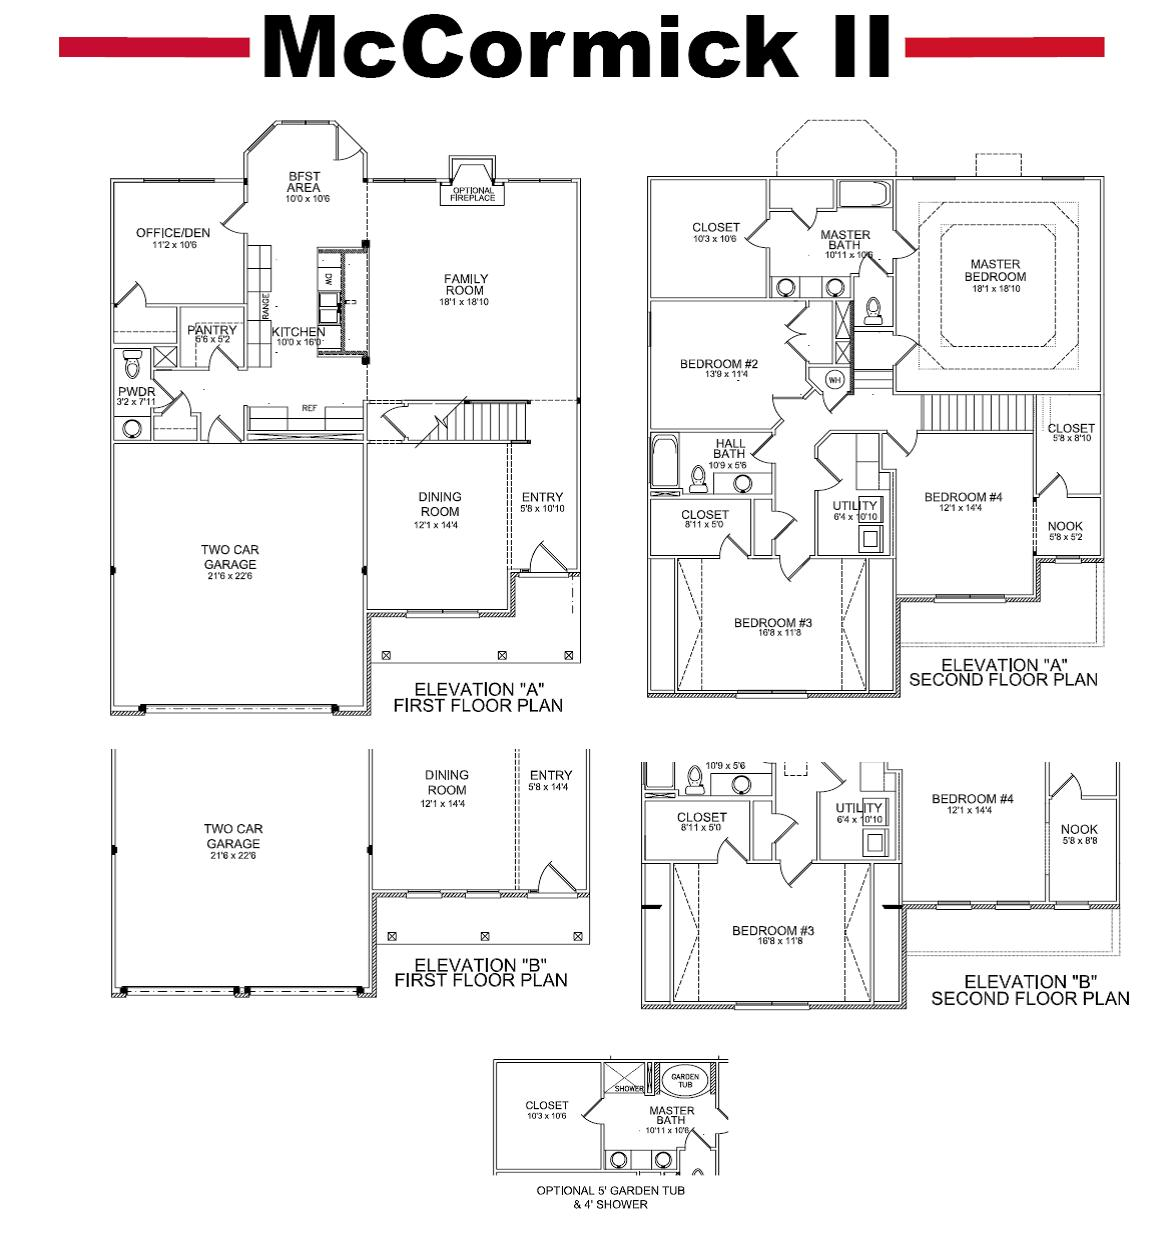 Master bathroom floor plans - Updates To Our Mccormick Floor Plan